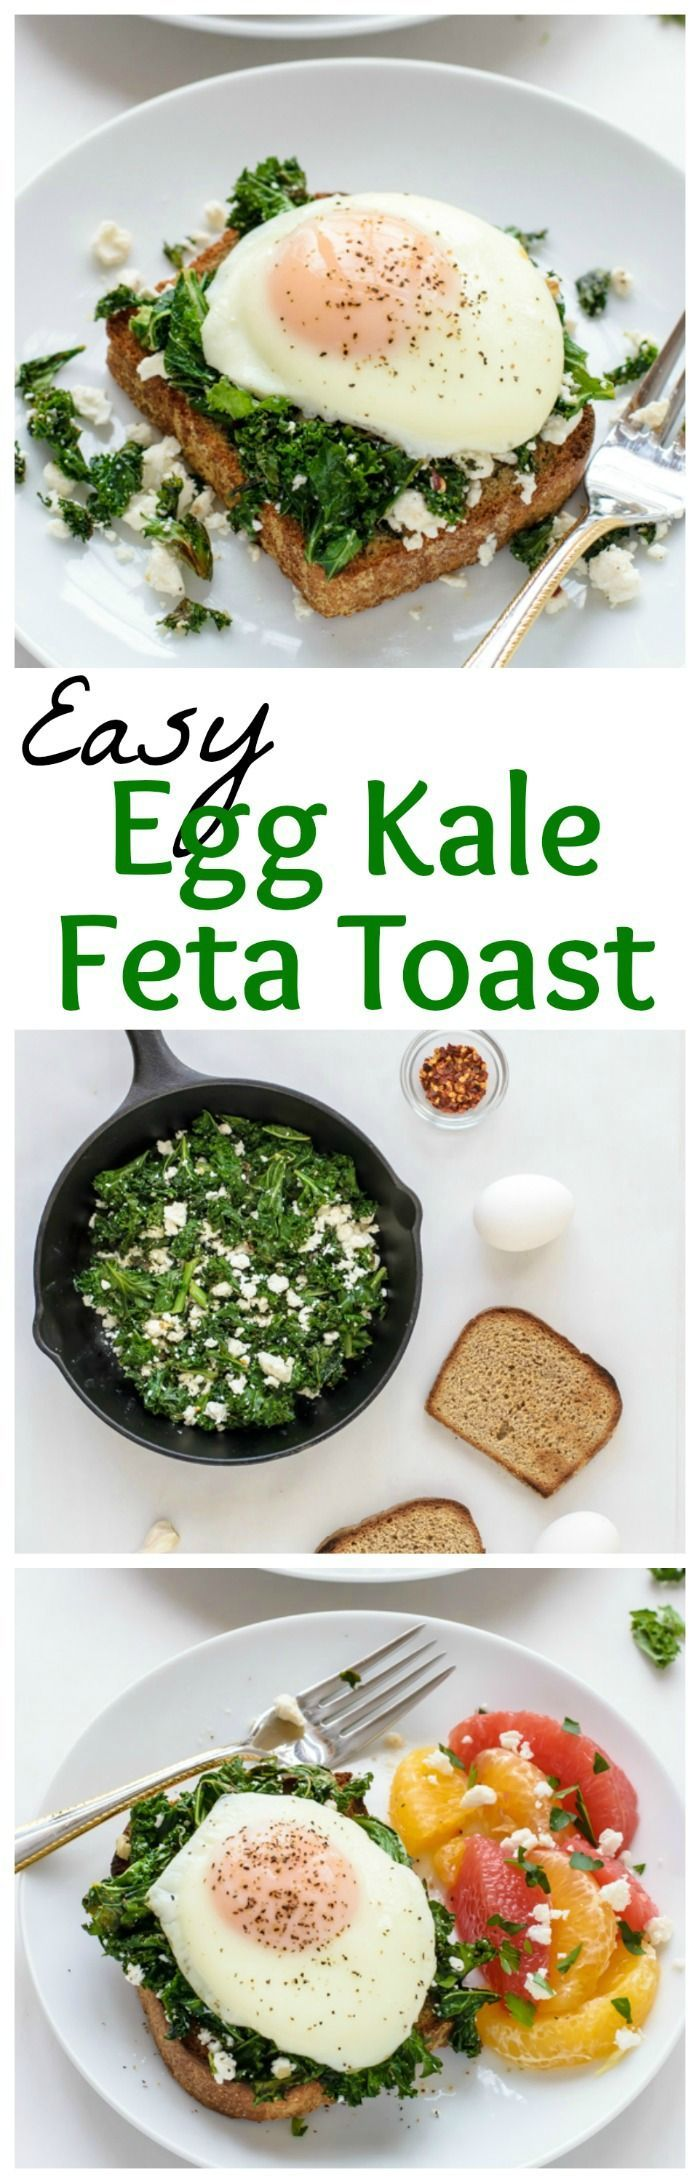 An easy, healthy dinner that is DELICIOUS. Creamy Kale Feta Toast with a Fried Egg. (Baking Bread Lights)